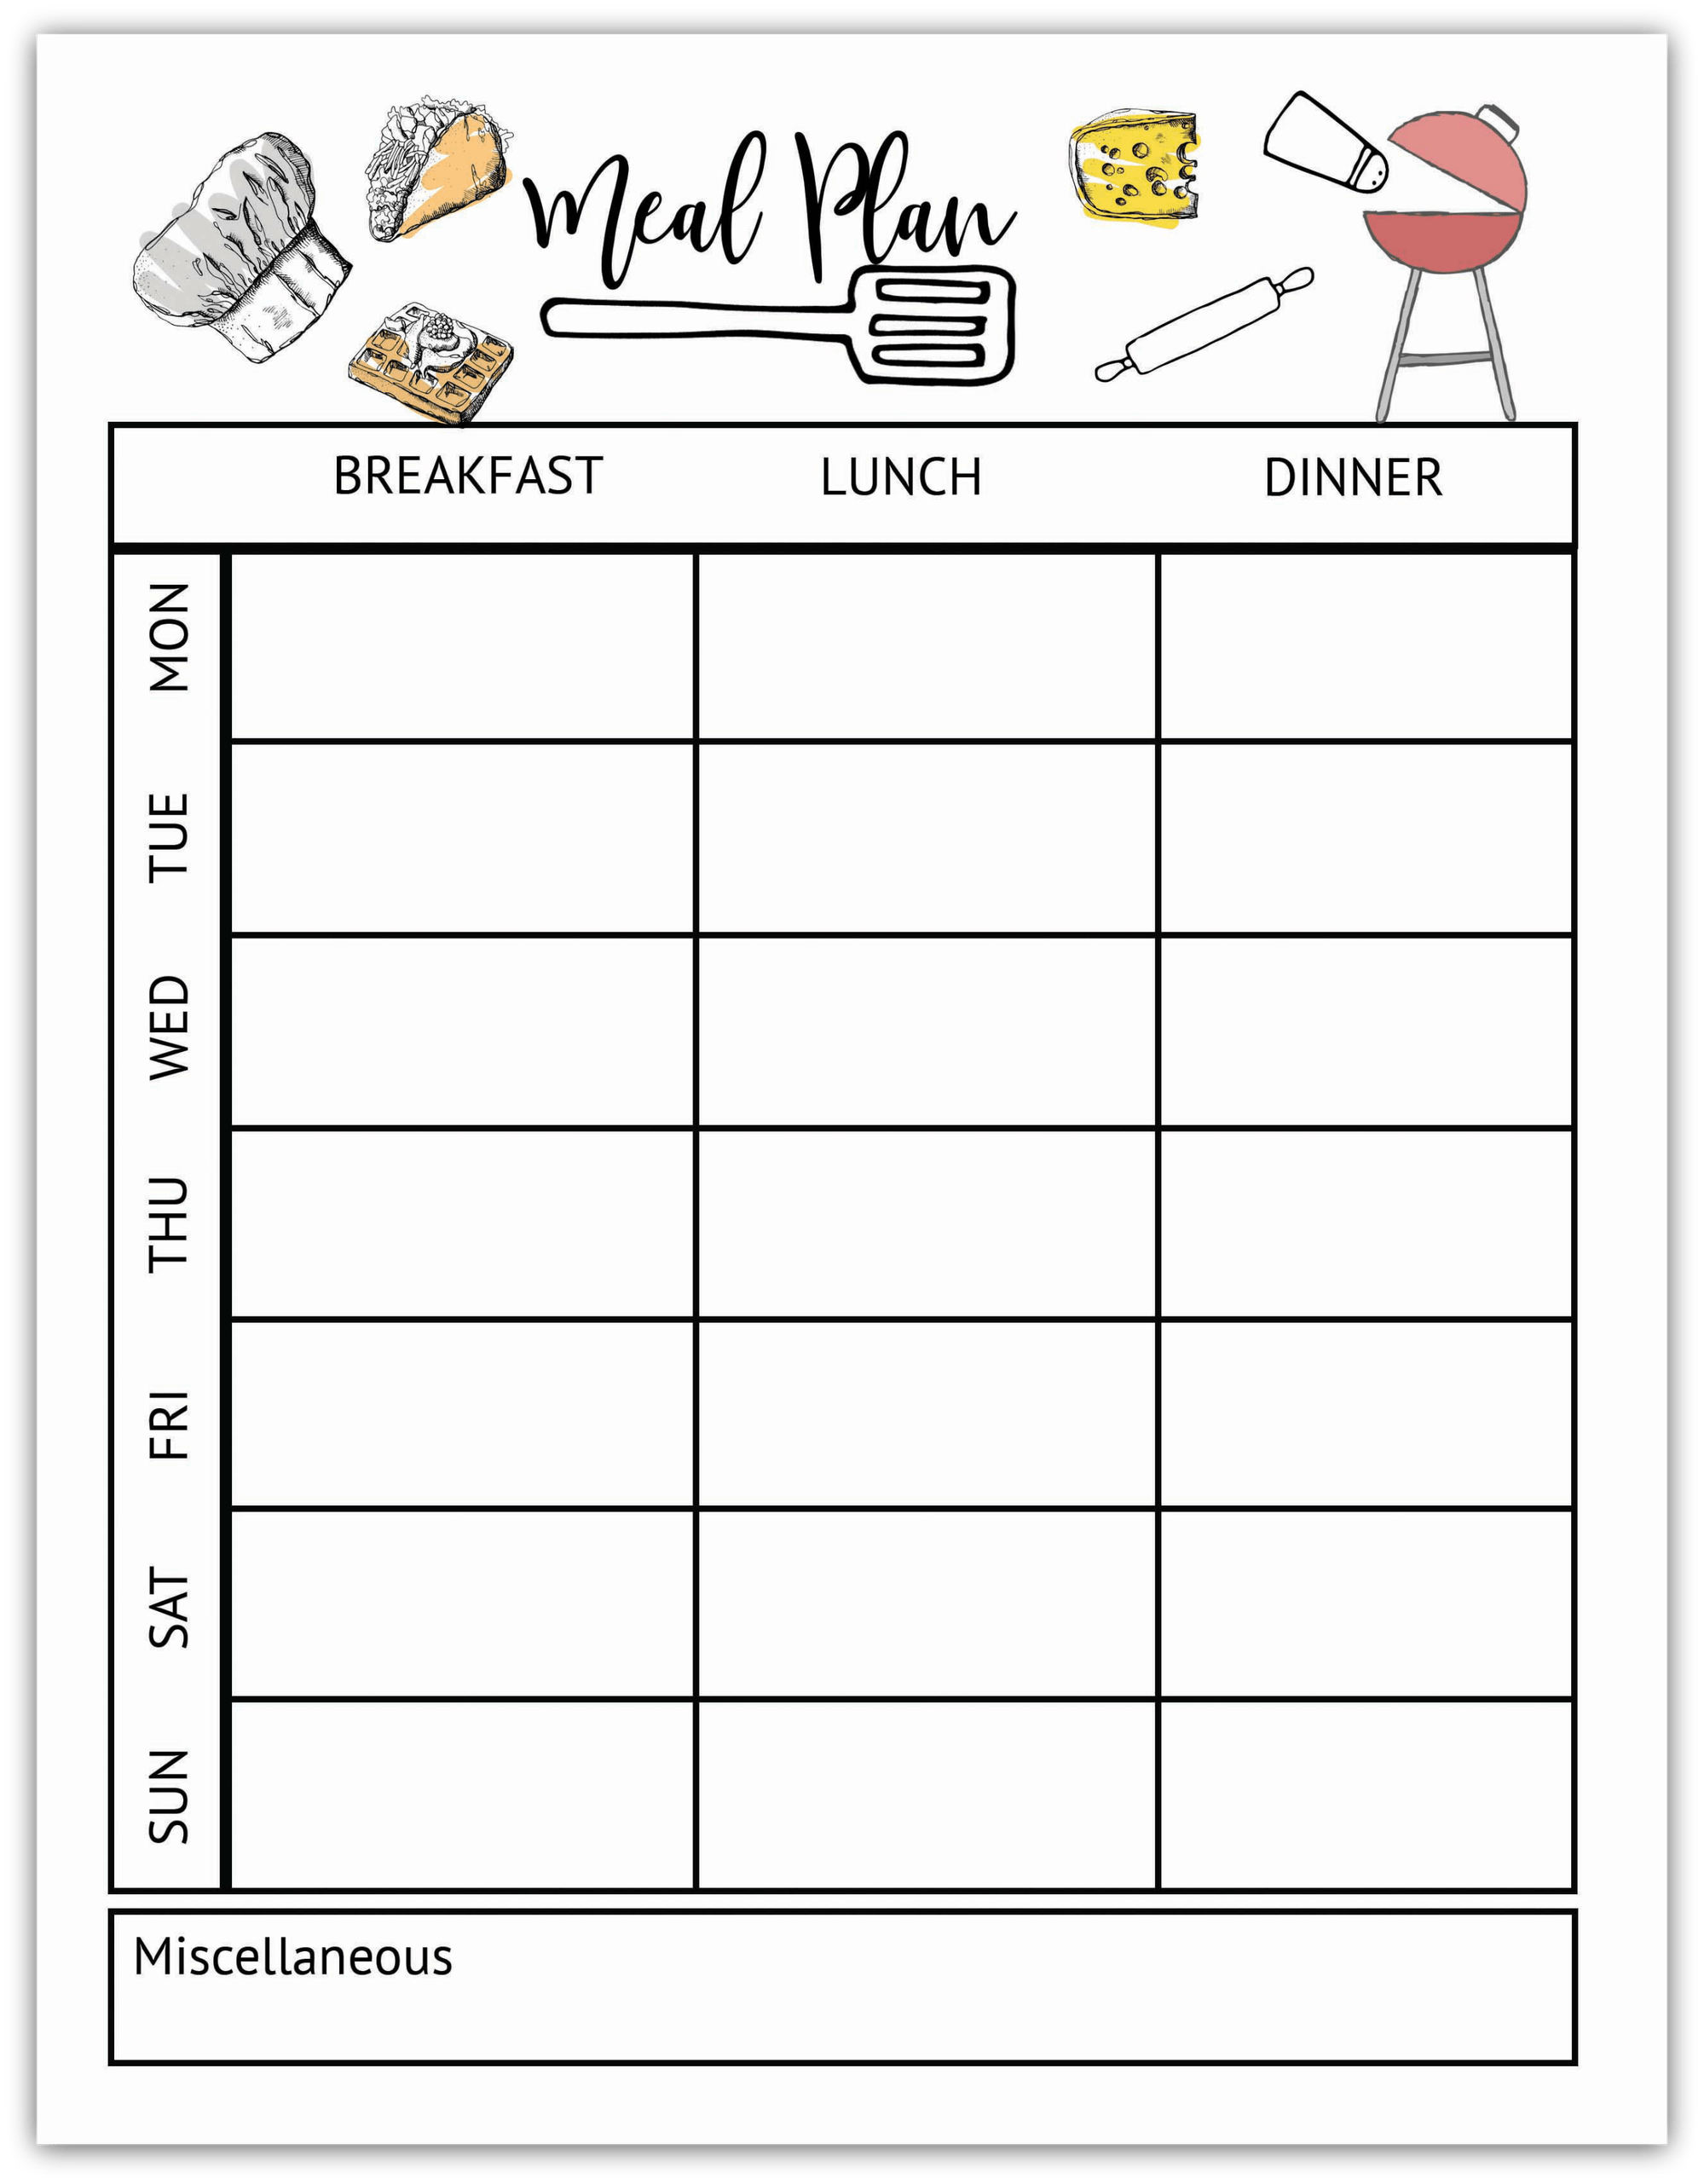 Meal Plan Worksheet